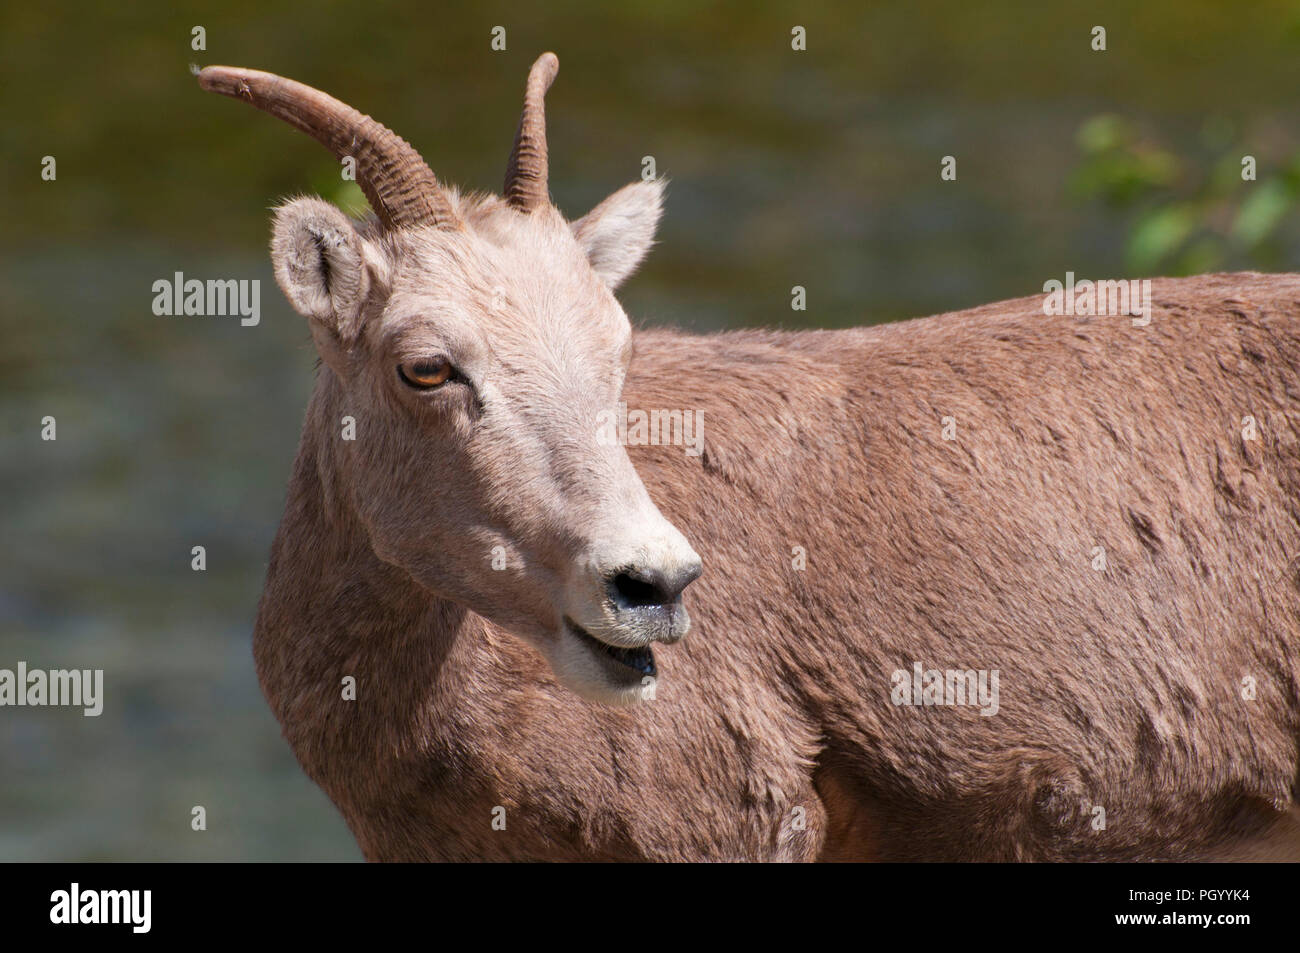 Bighorn sheep near Thompson River, Lolo National Forest, Montana Stock Photo